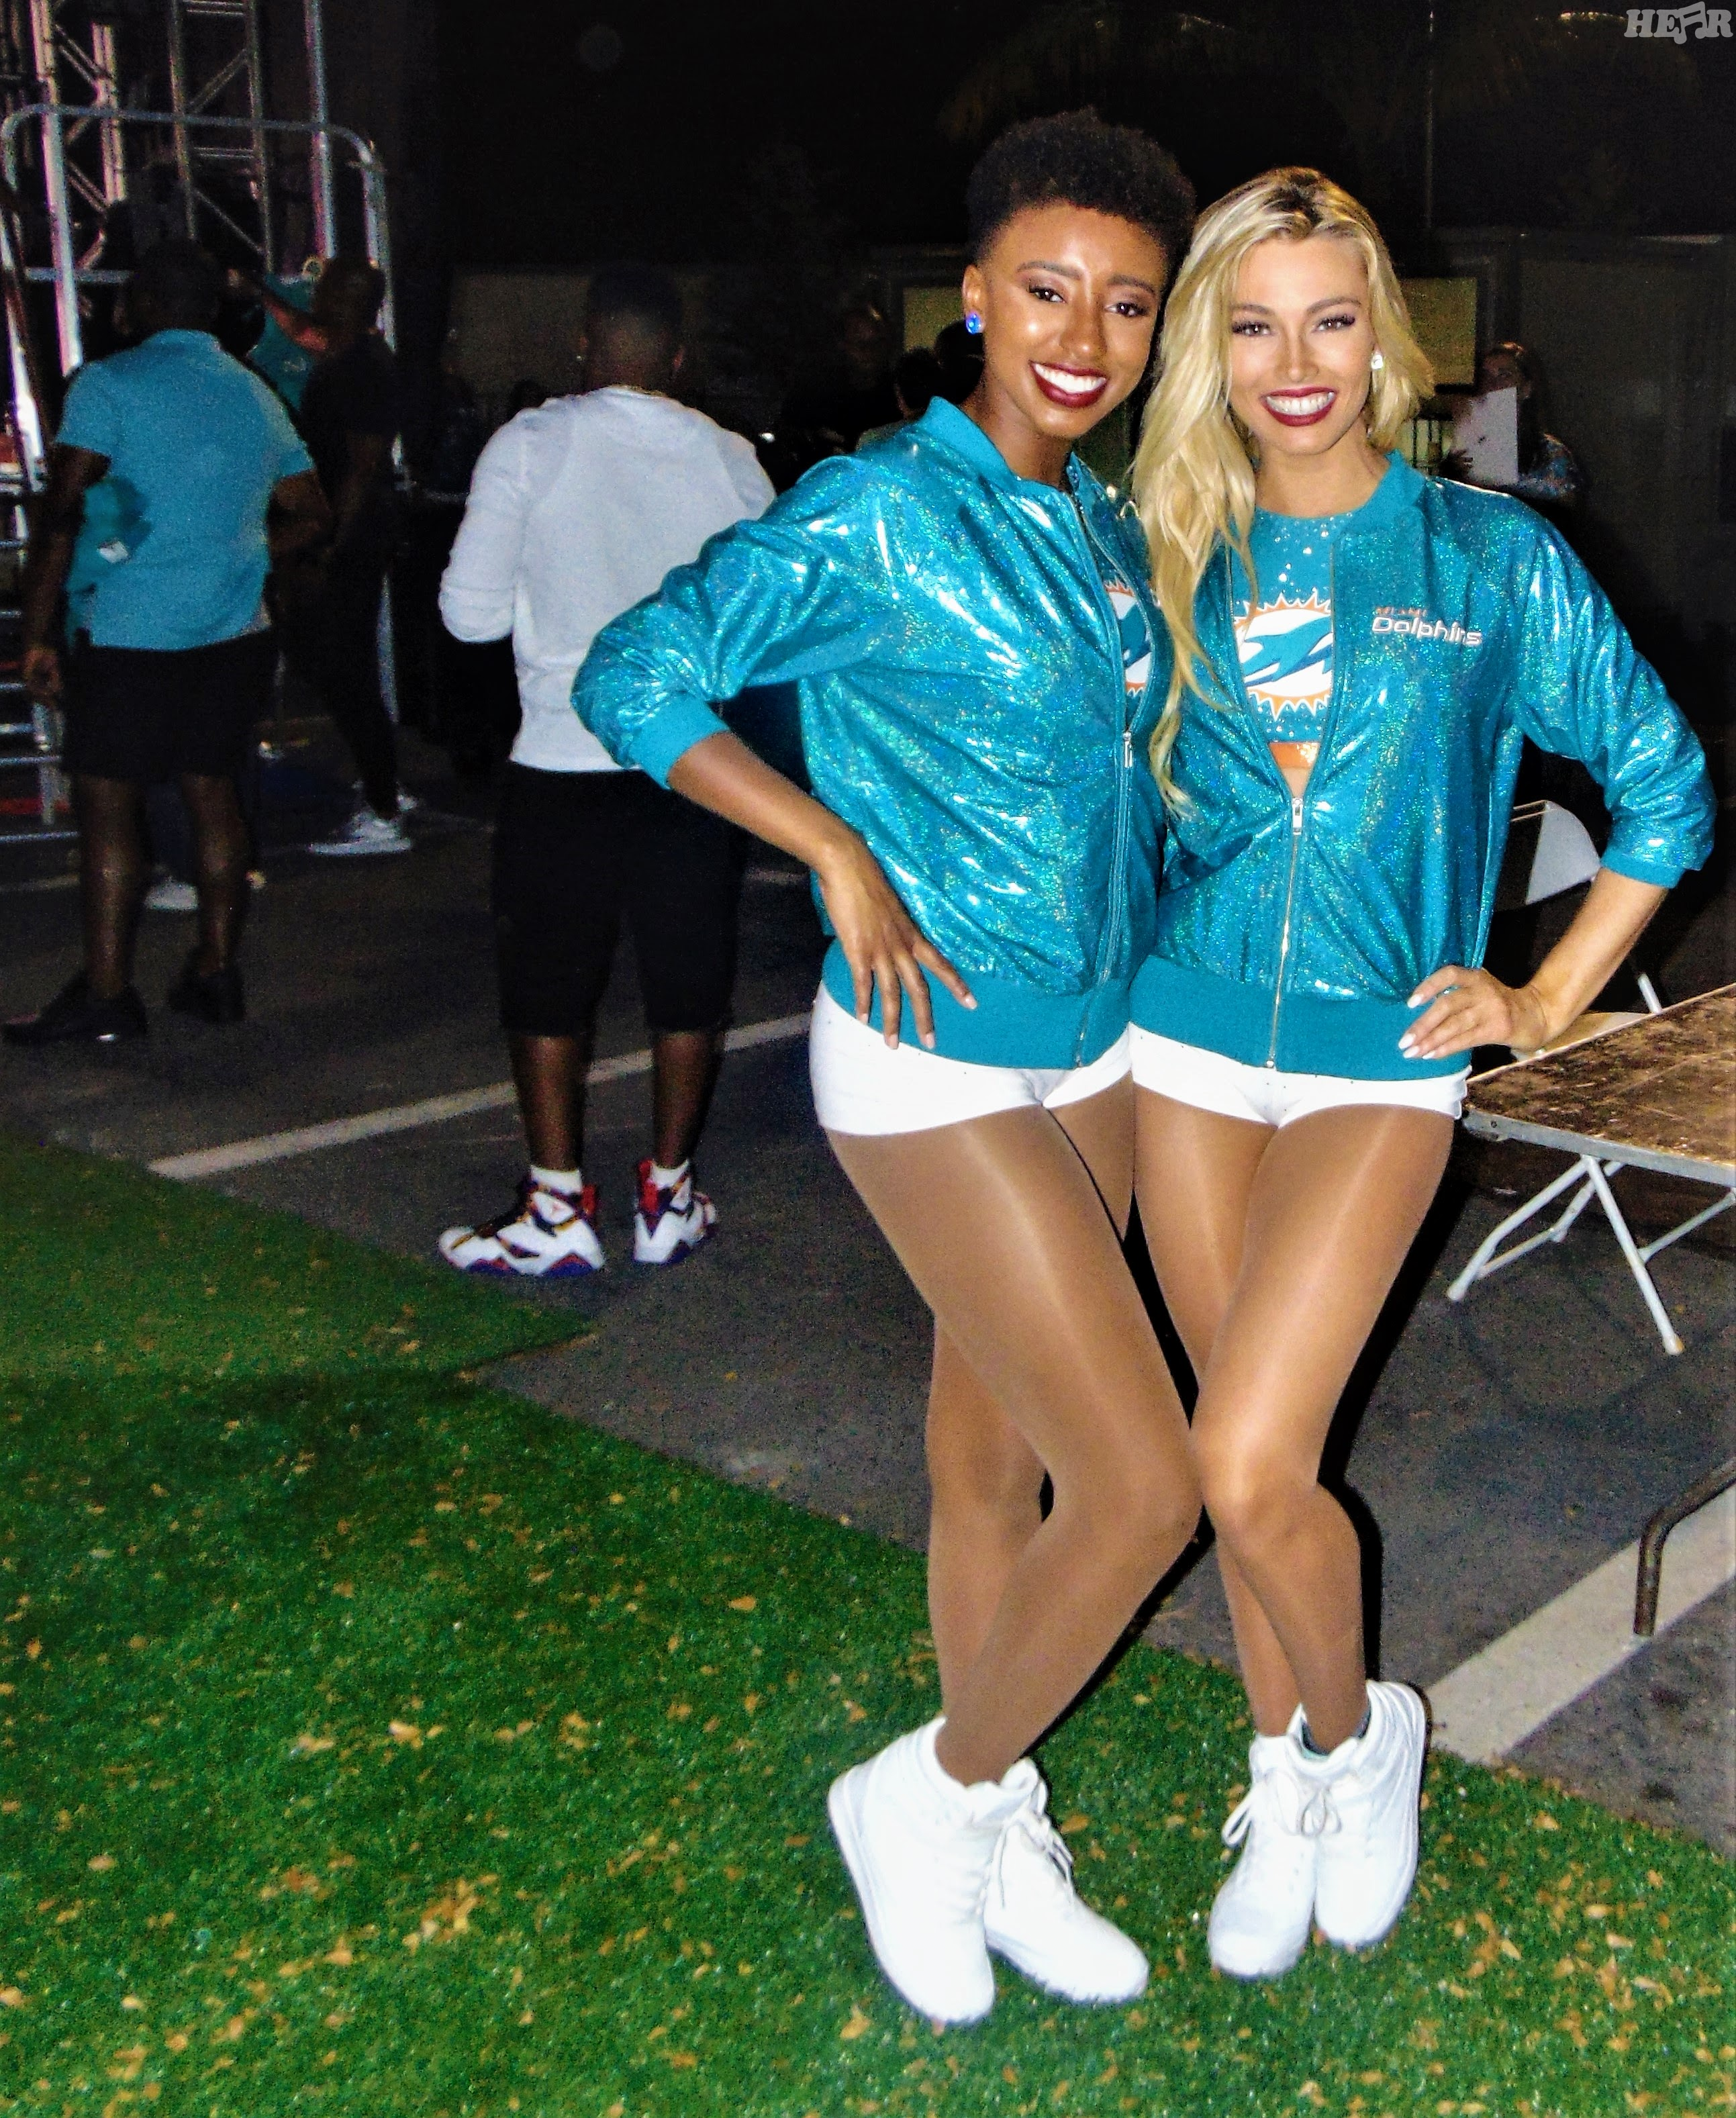 Miami Dolphins Draft Party 9